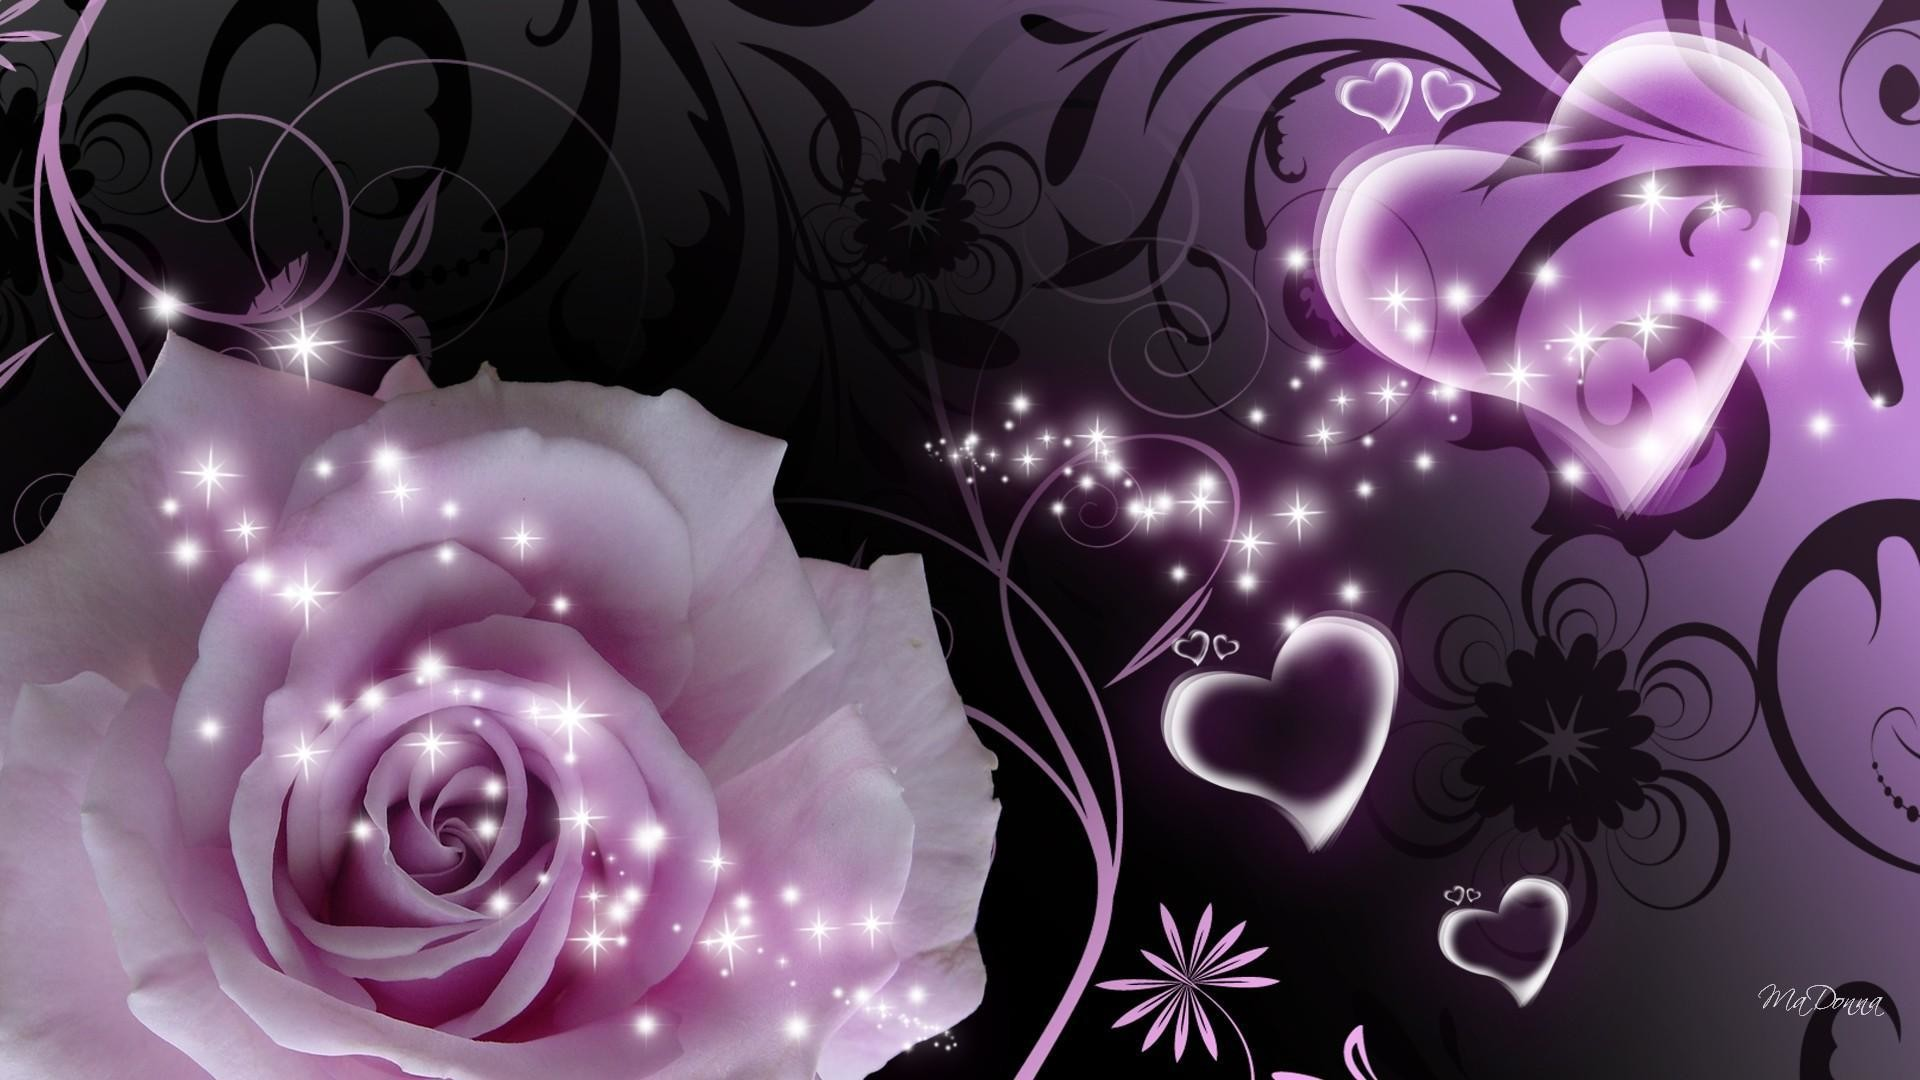 Purple rose and heart, a beautiful picture